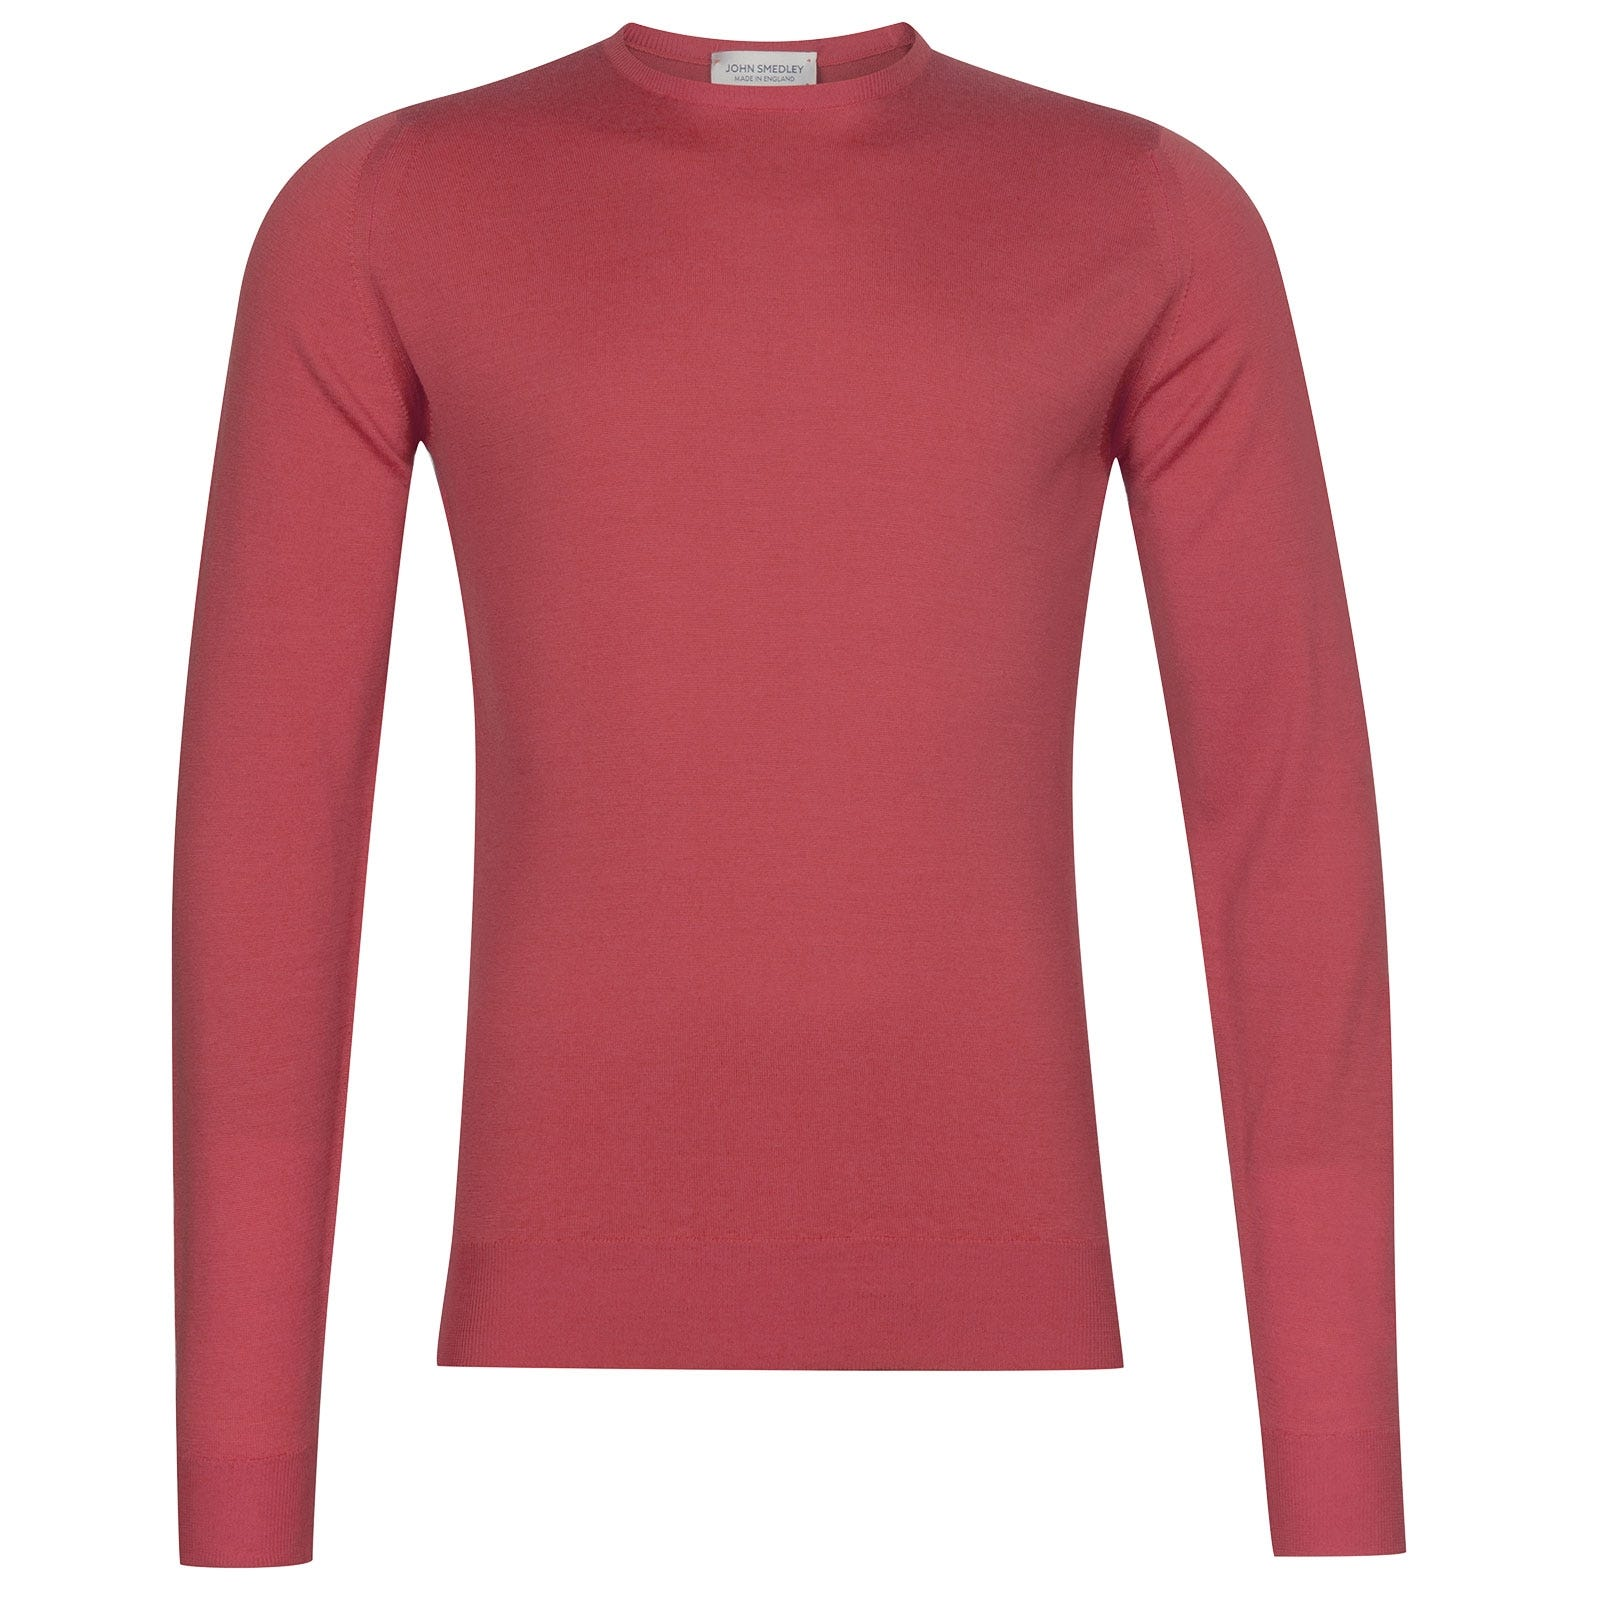 John Smedley Lundy Merino Wool Pullover in Atomic Cerise-XXL